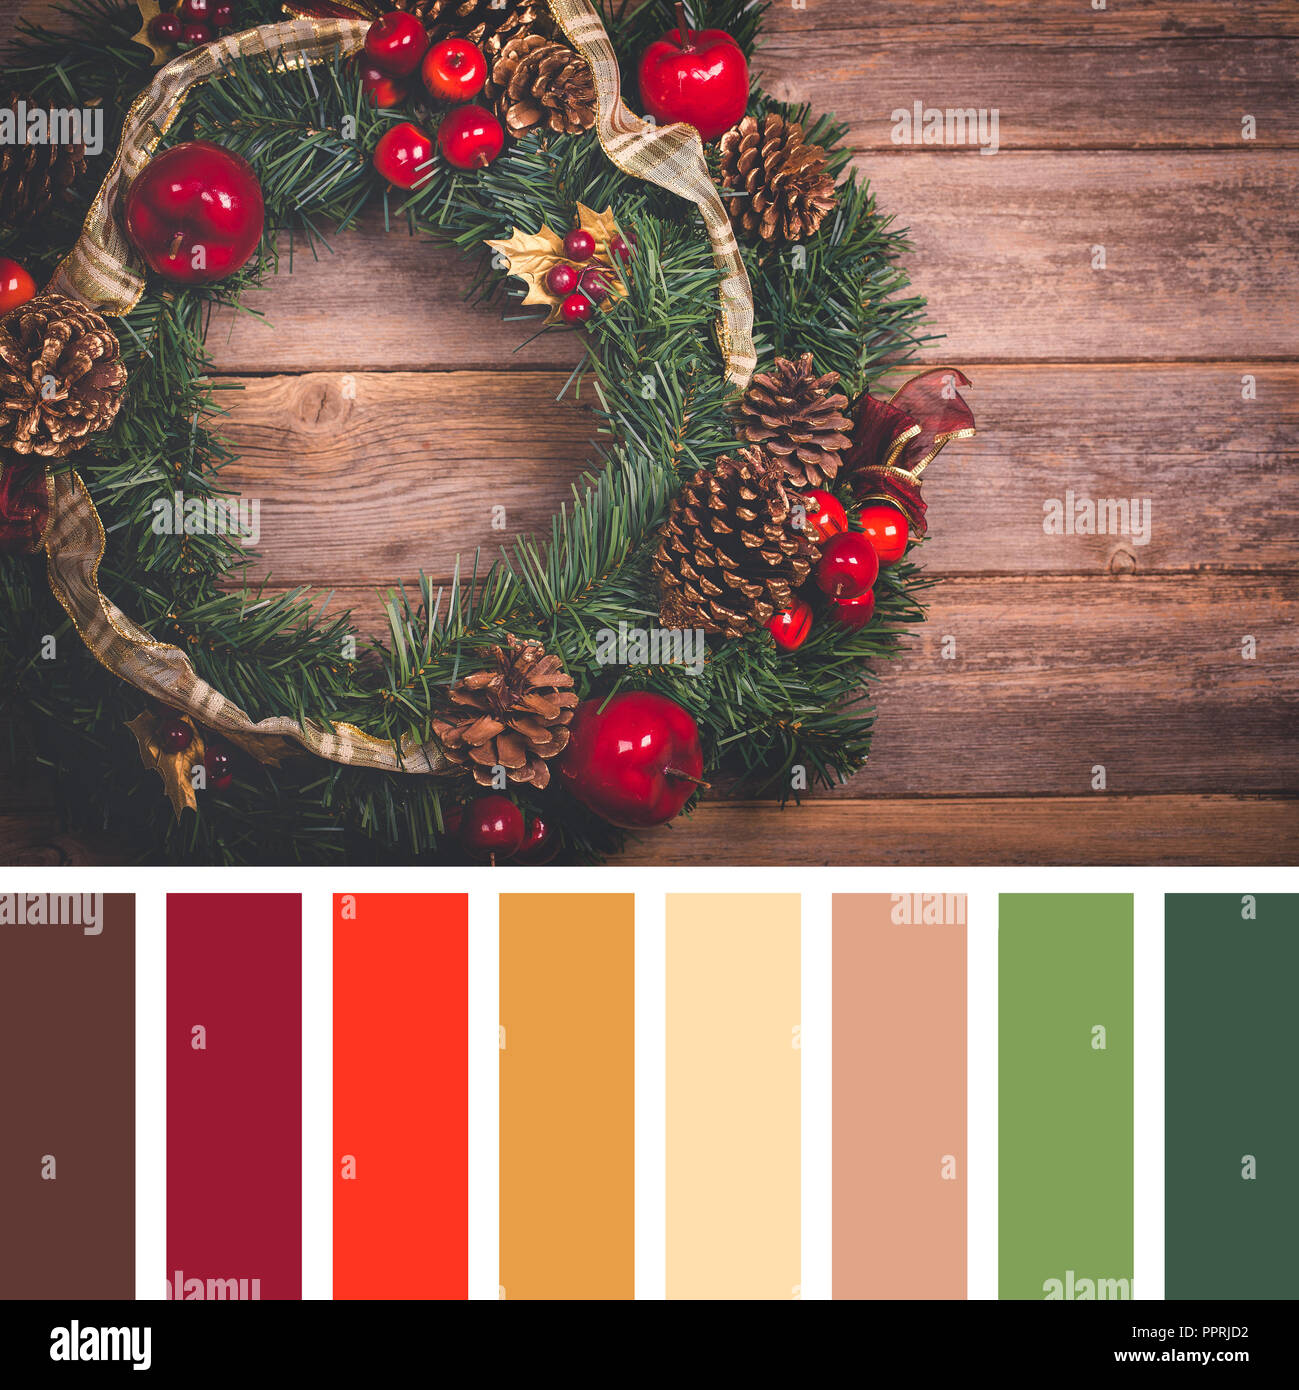 Cmyk Christmas Tree High Resolution Stock Photography And Images Alamy